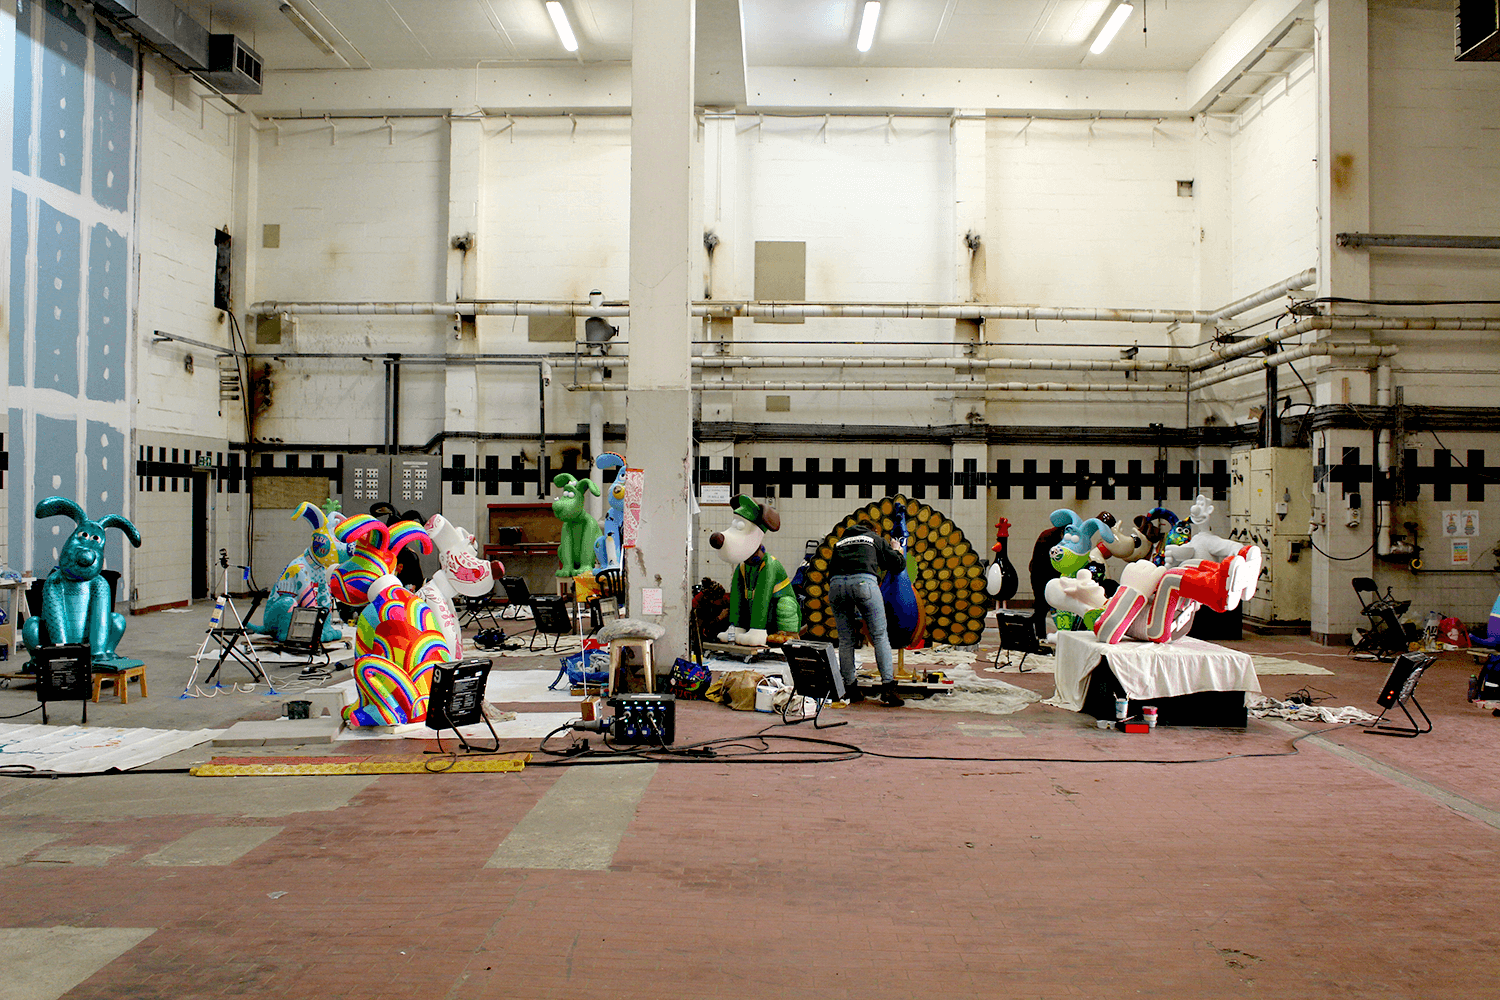 The painting space, amongst some of the other sculptures being painted by other artists